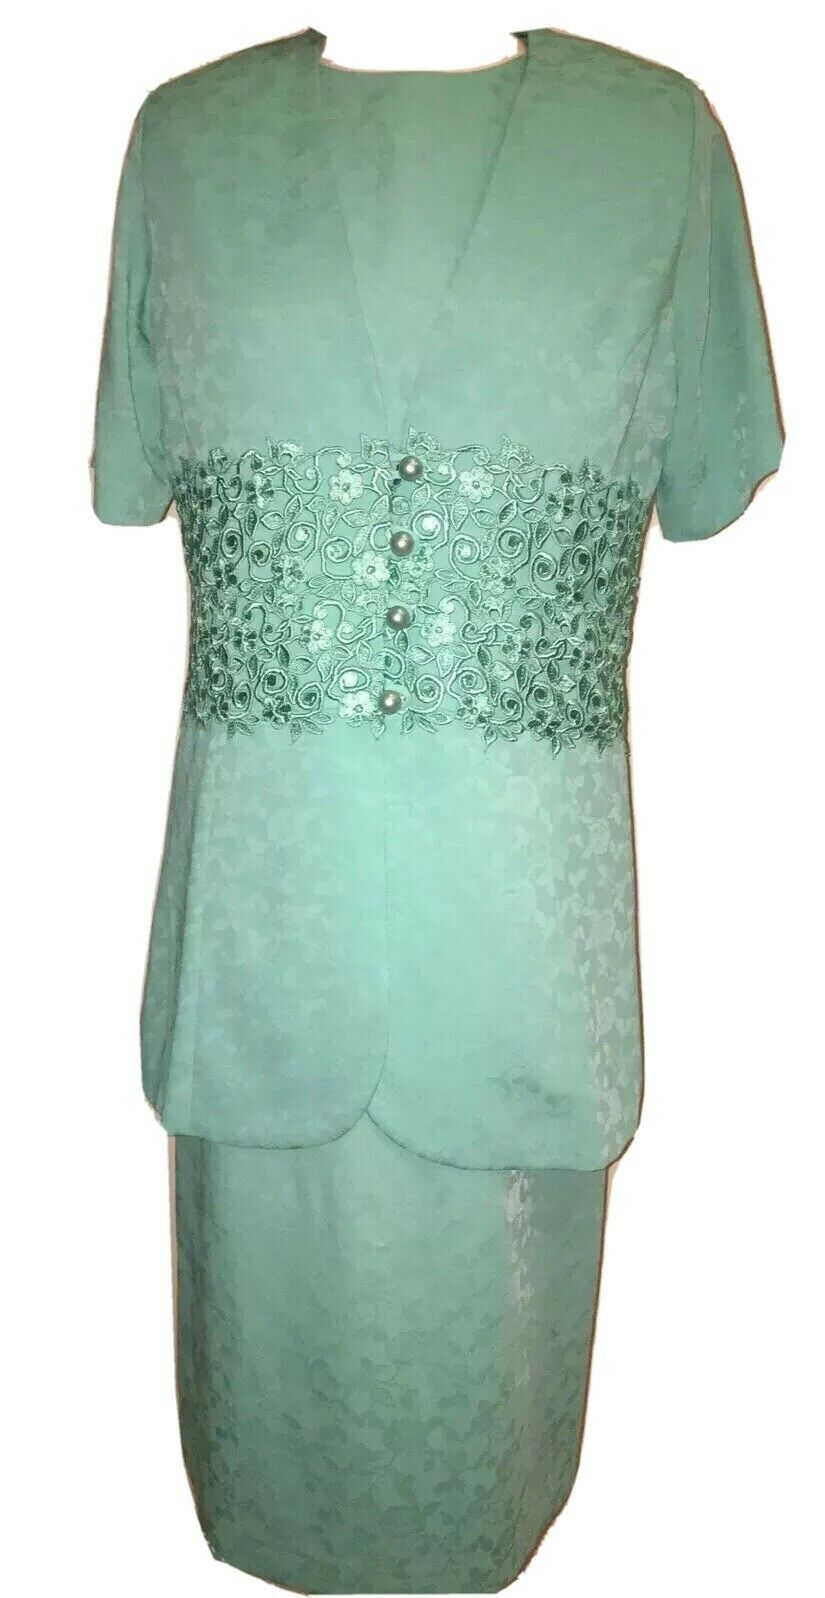 Gina Bacconi New Mint Green Dress Suit Size 10 UK Wedding Party special RRP